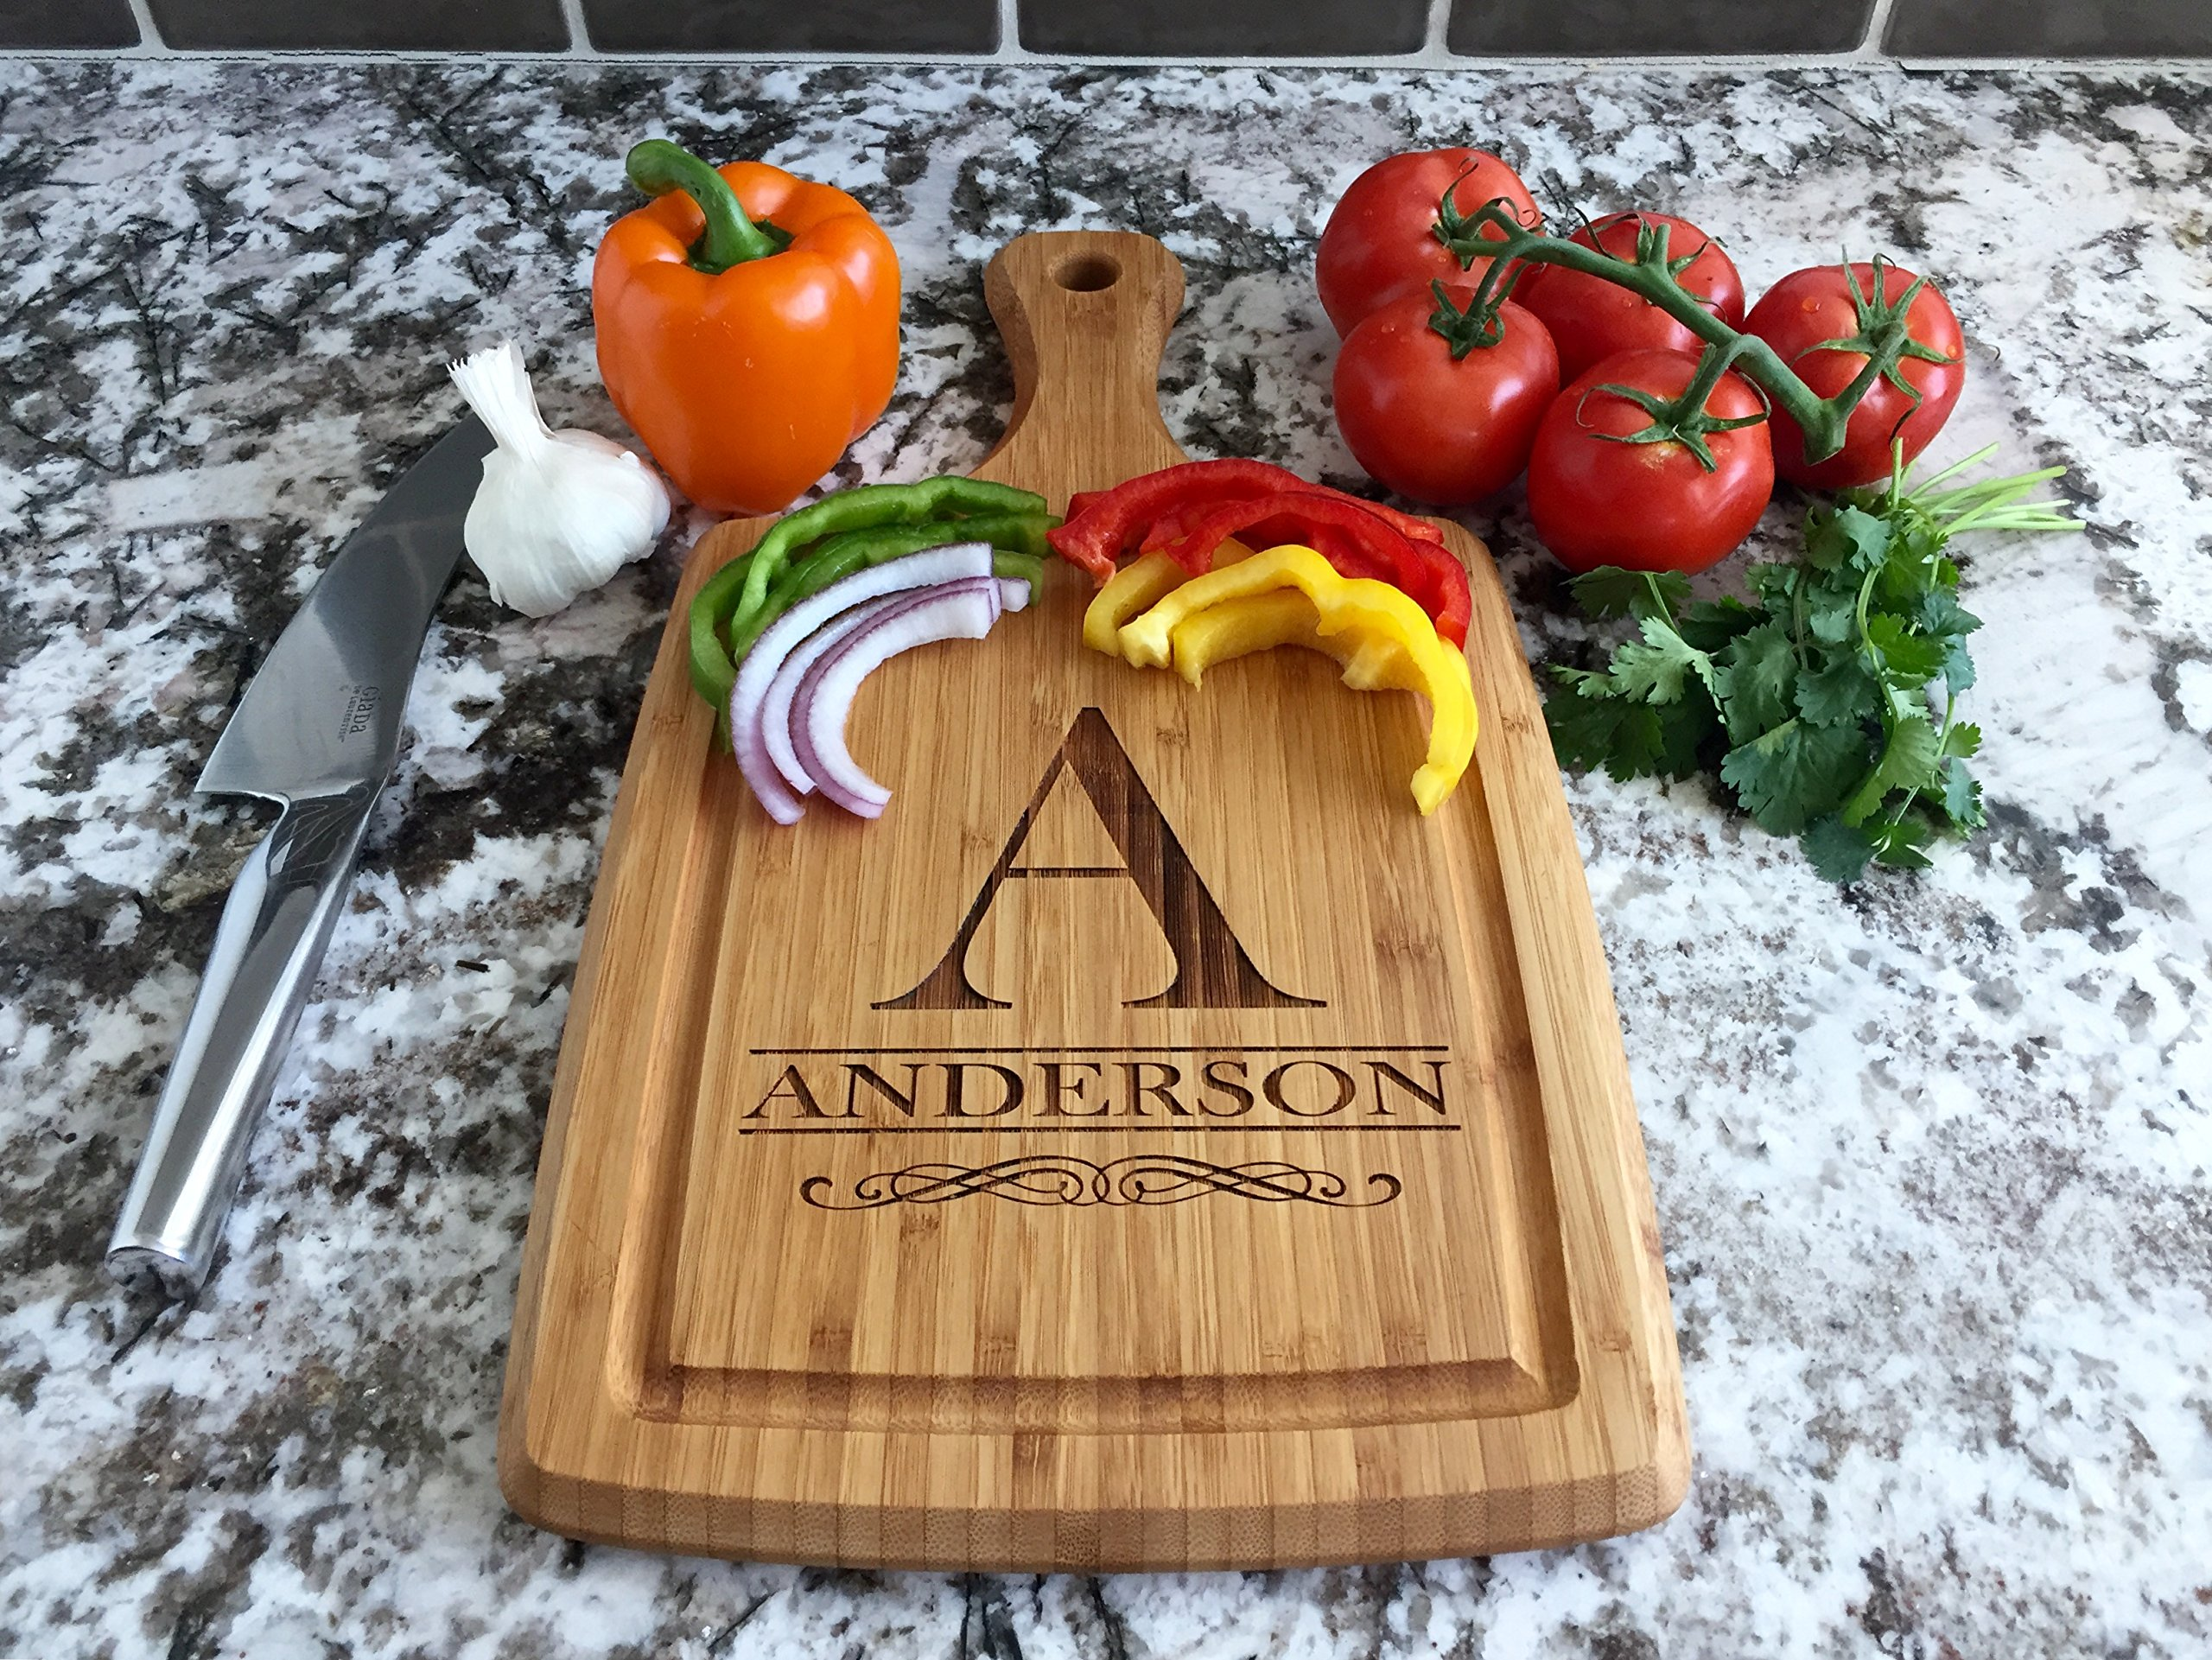 Personalized by Name Cutting Board for Kitchen - Wood Boards Housewarming & Wedding Gift (9 x 17 Bamboo Rectangular with Grooves, Anderson Design)